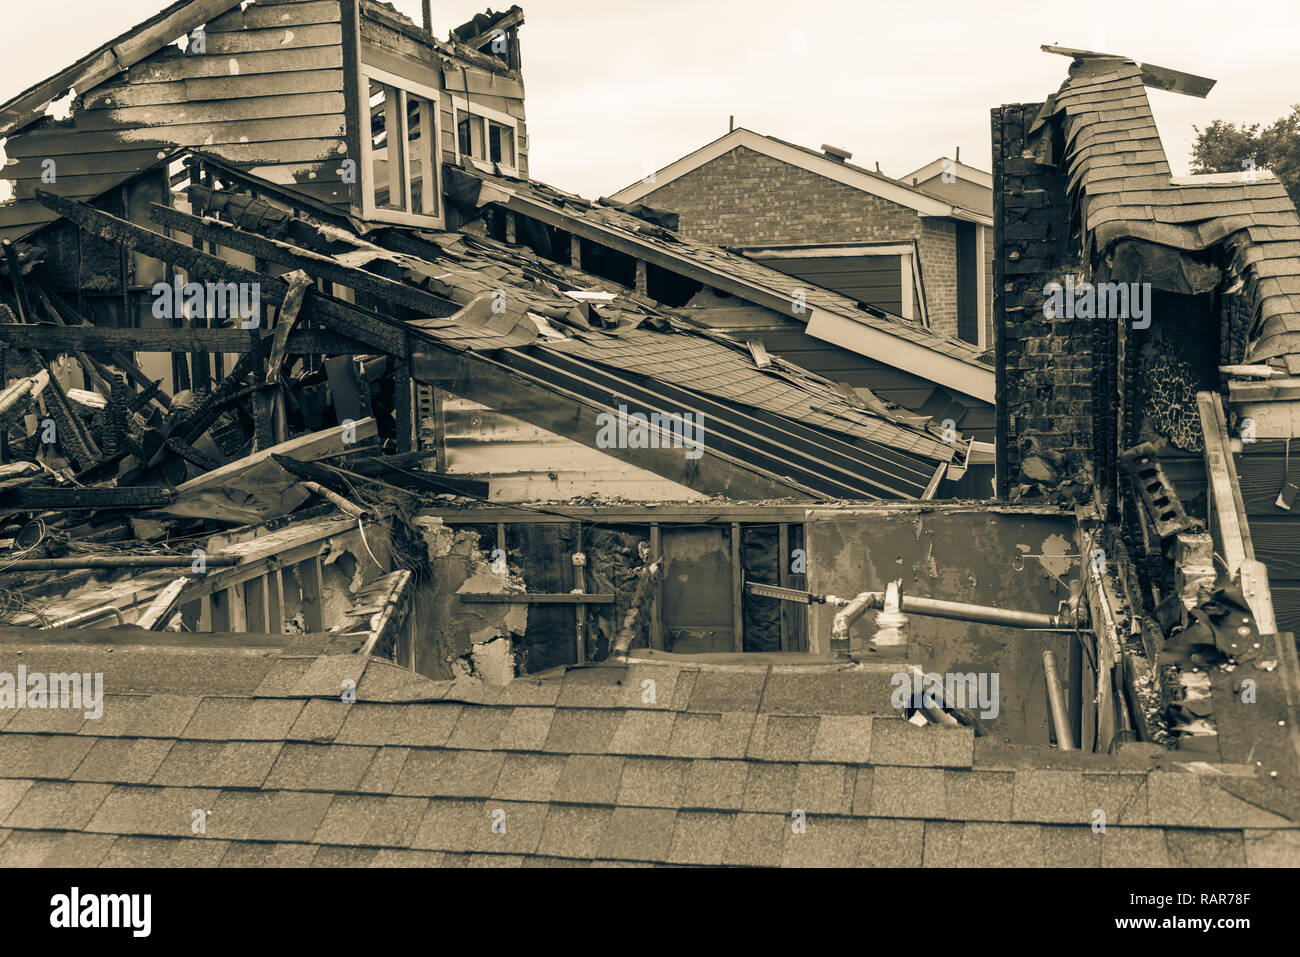 Filtered image damaged apartment building after burned by fire i - Stock Image